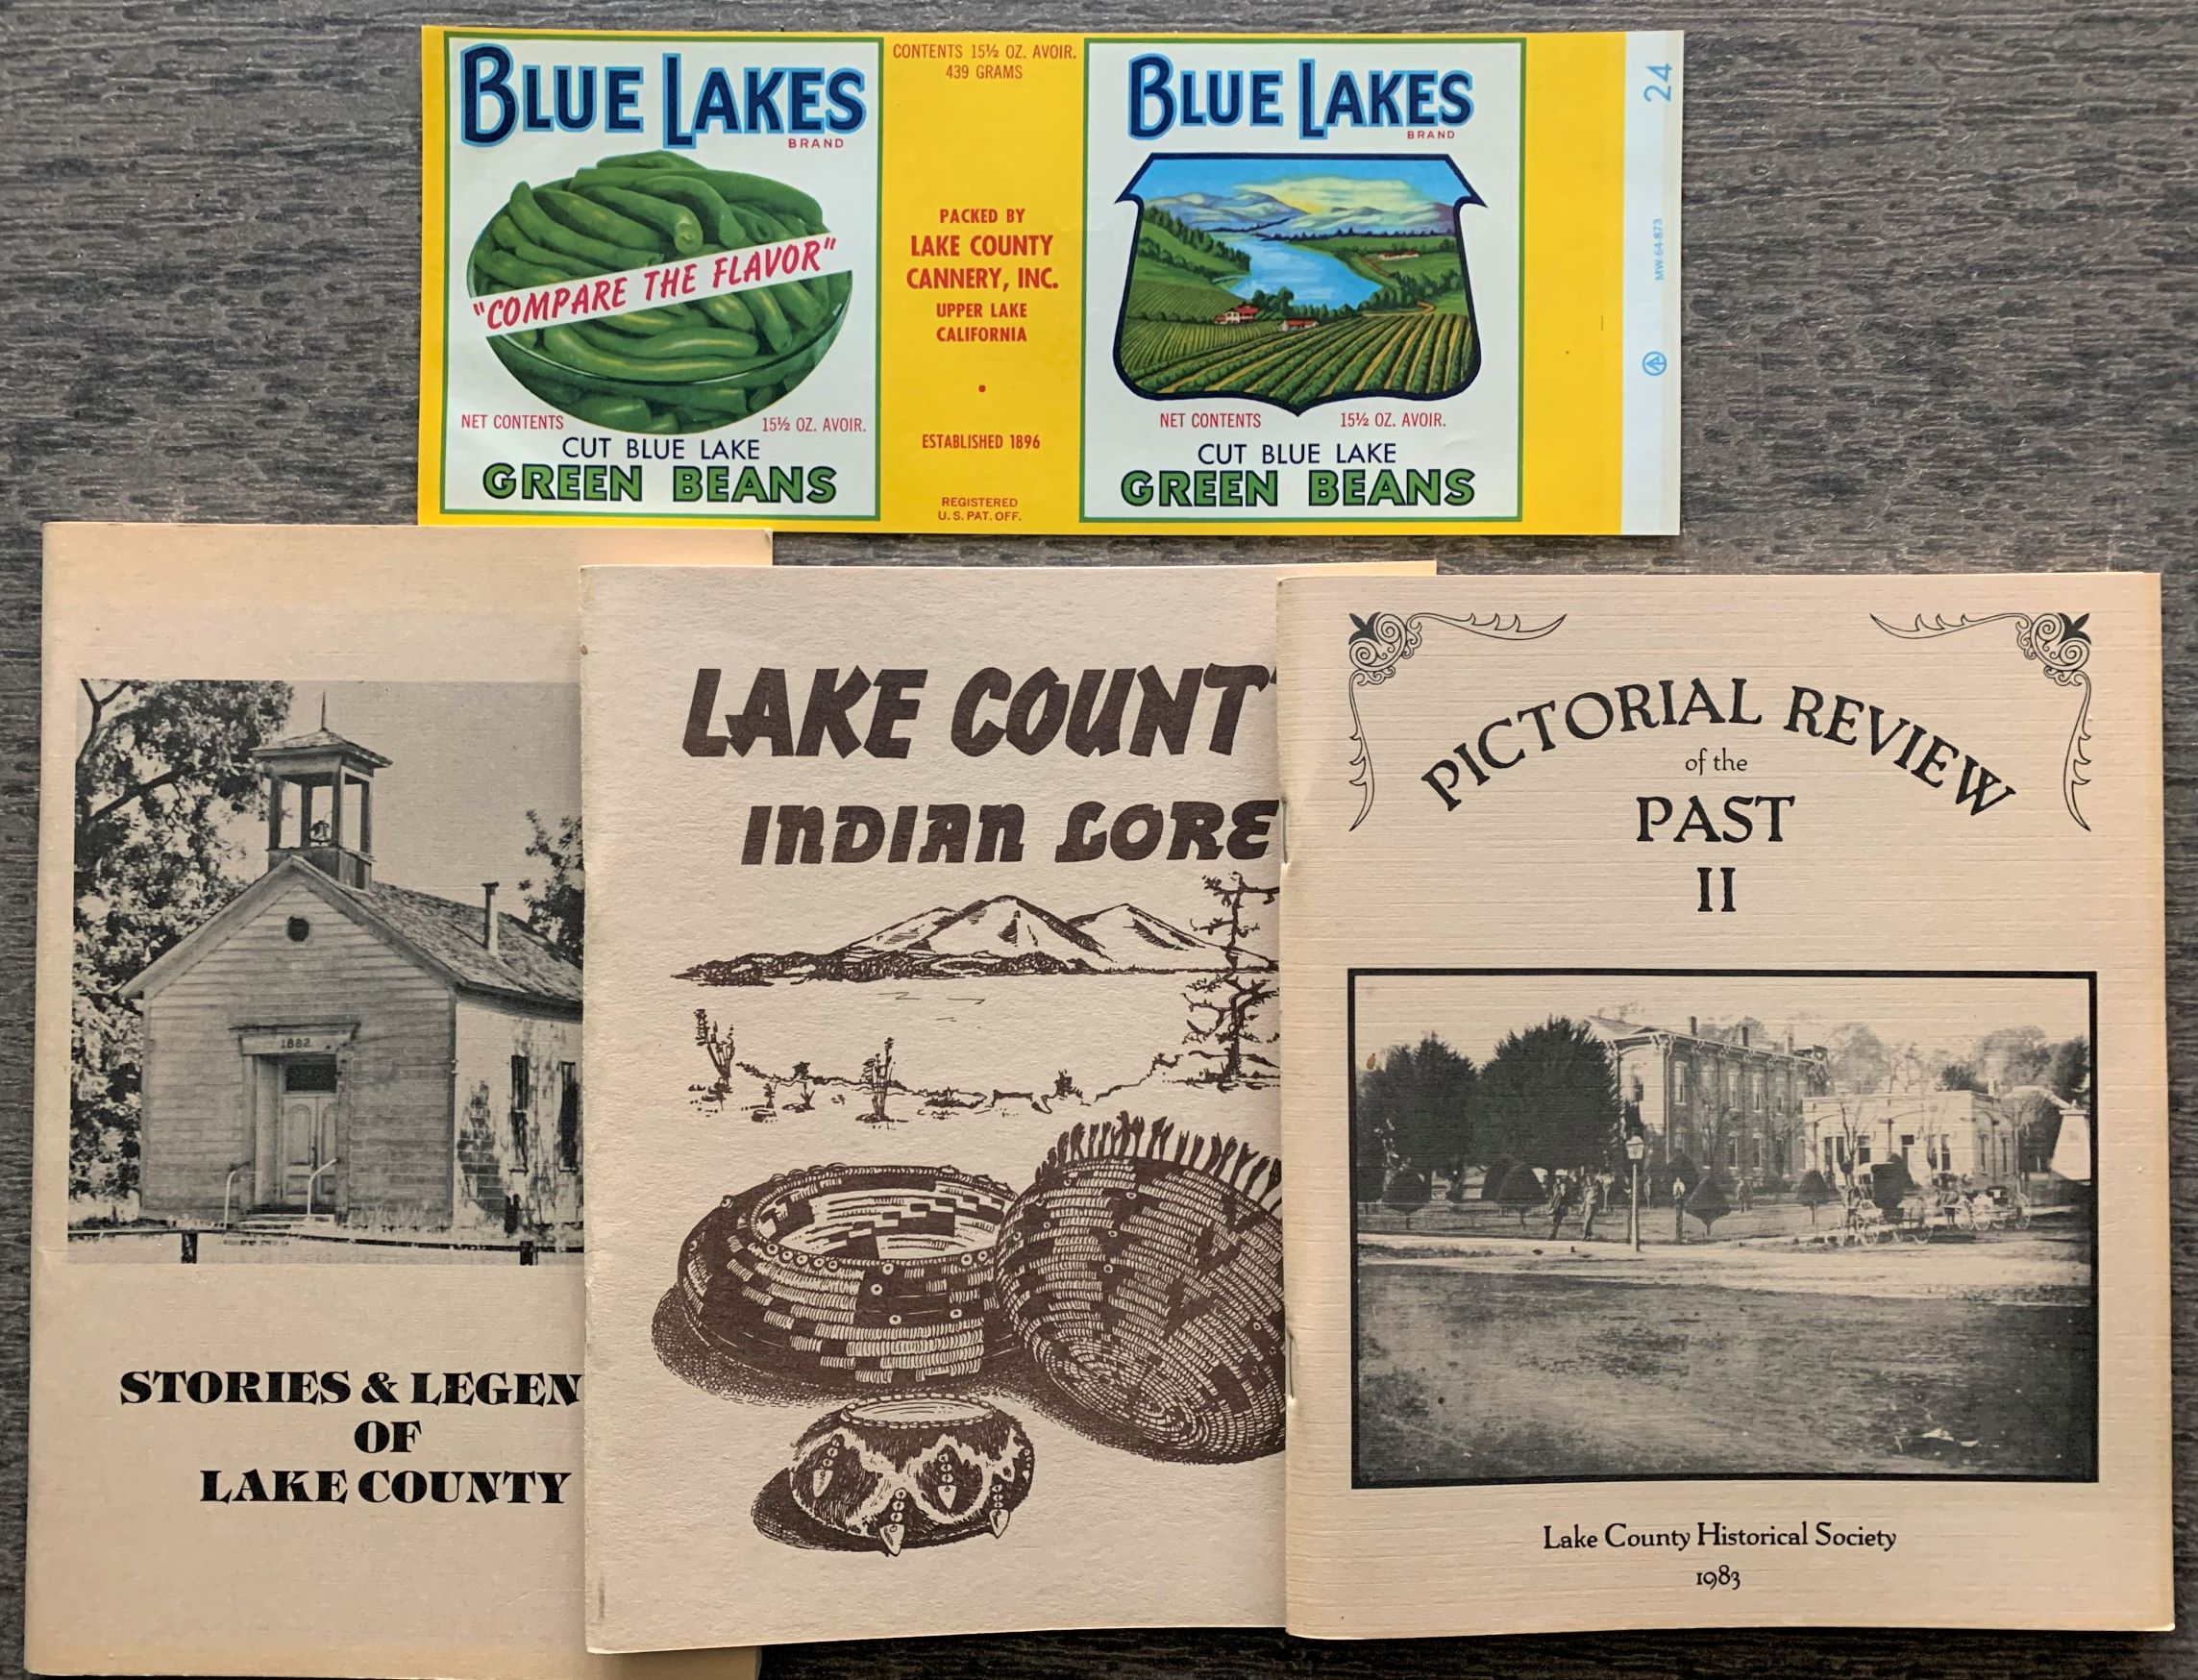 Image for [4 Items] Lake County Indian Lore; Stories & Legends of Lake County; Pictorial Review of the Past II; Color Label for Blue Lakes Green Beans.